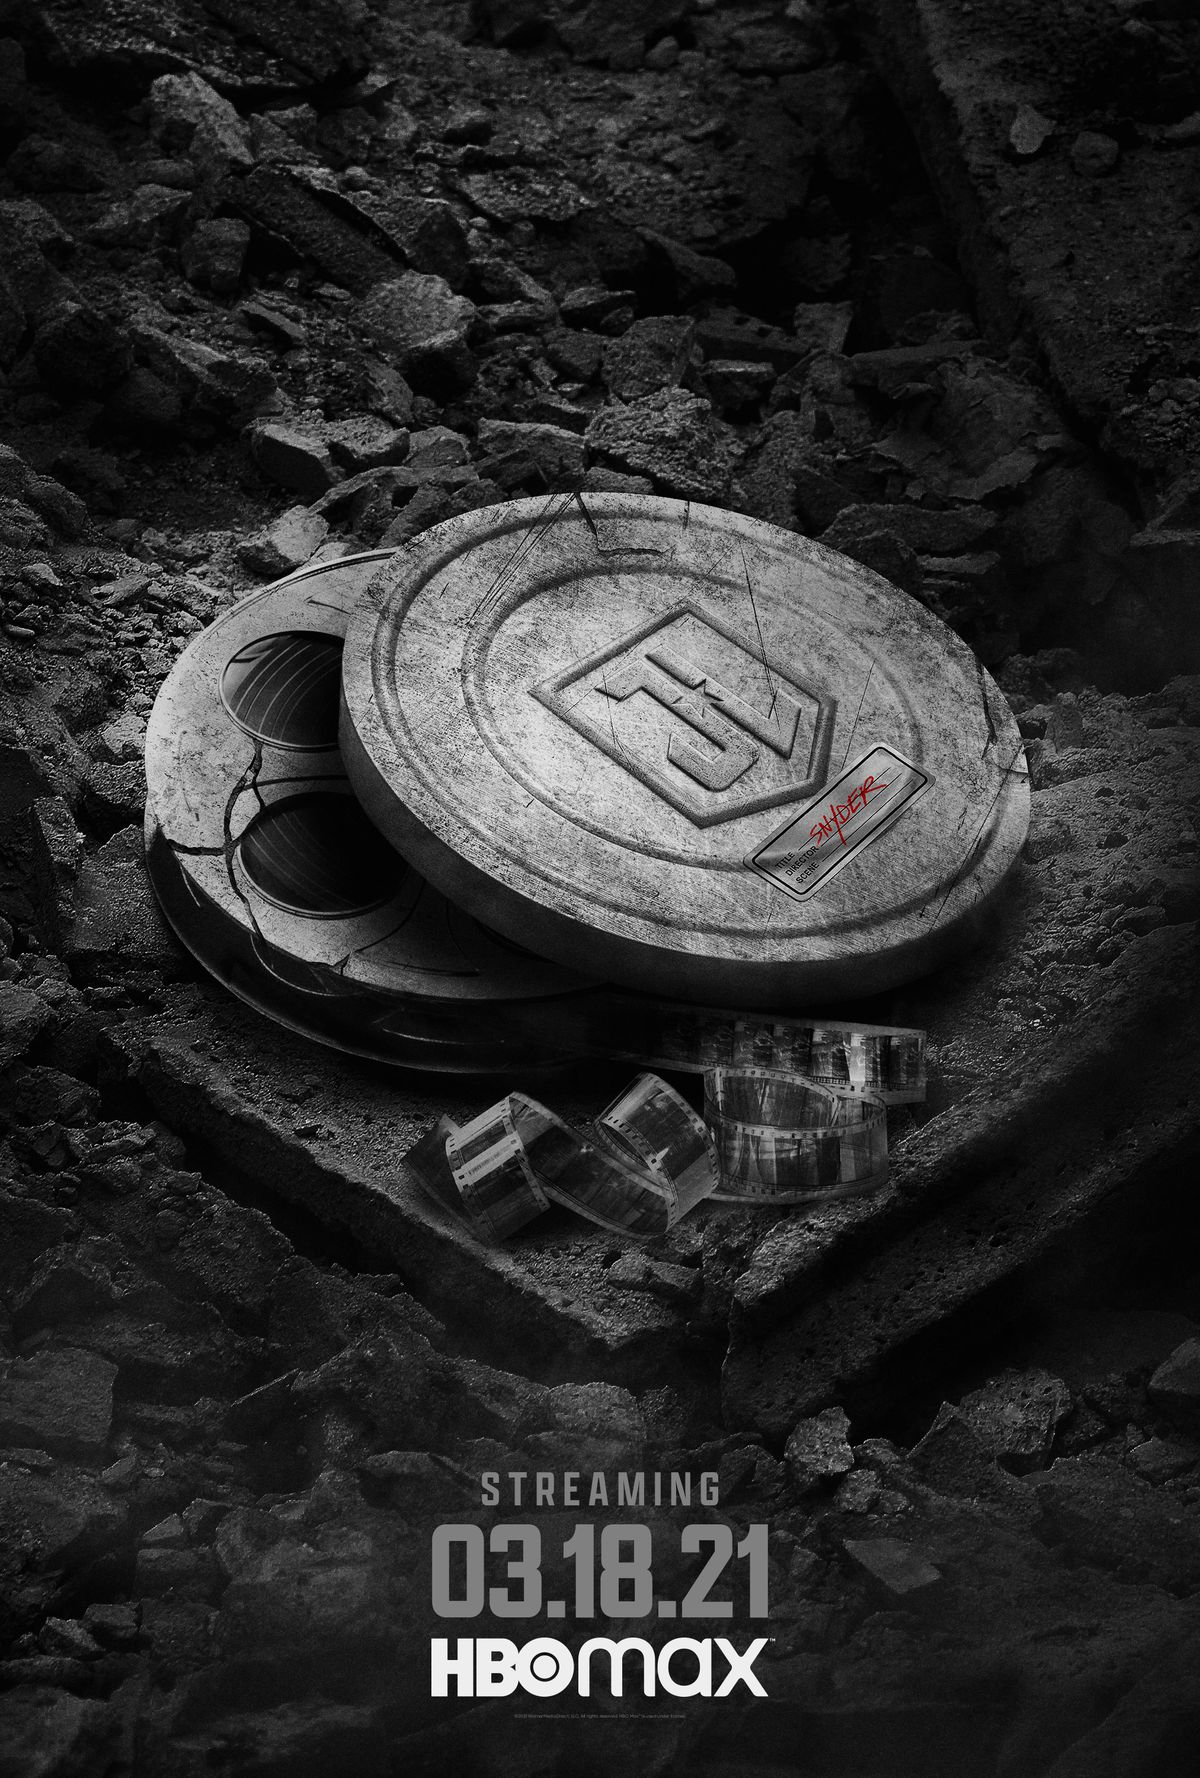 Justice League Snyder Cut poster with film canisters